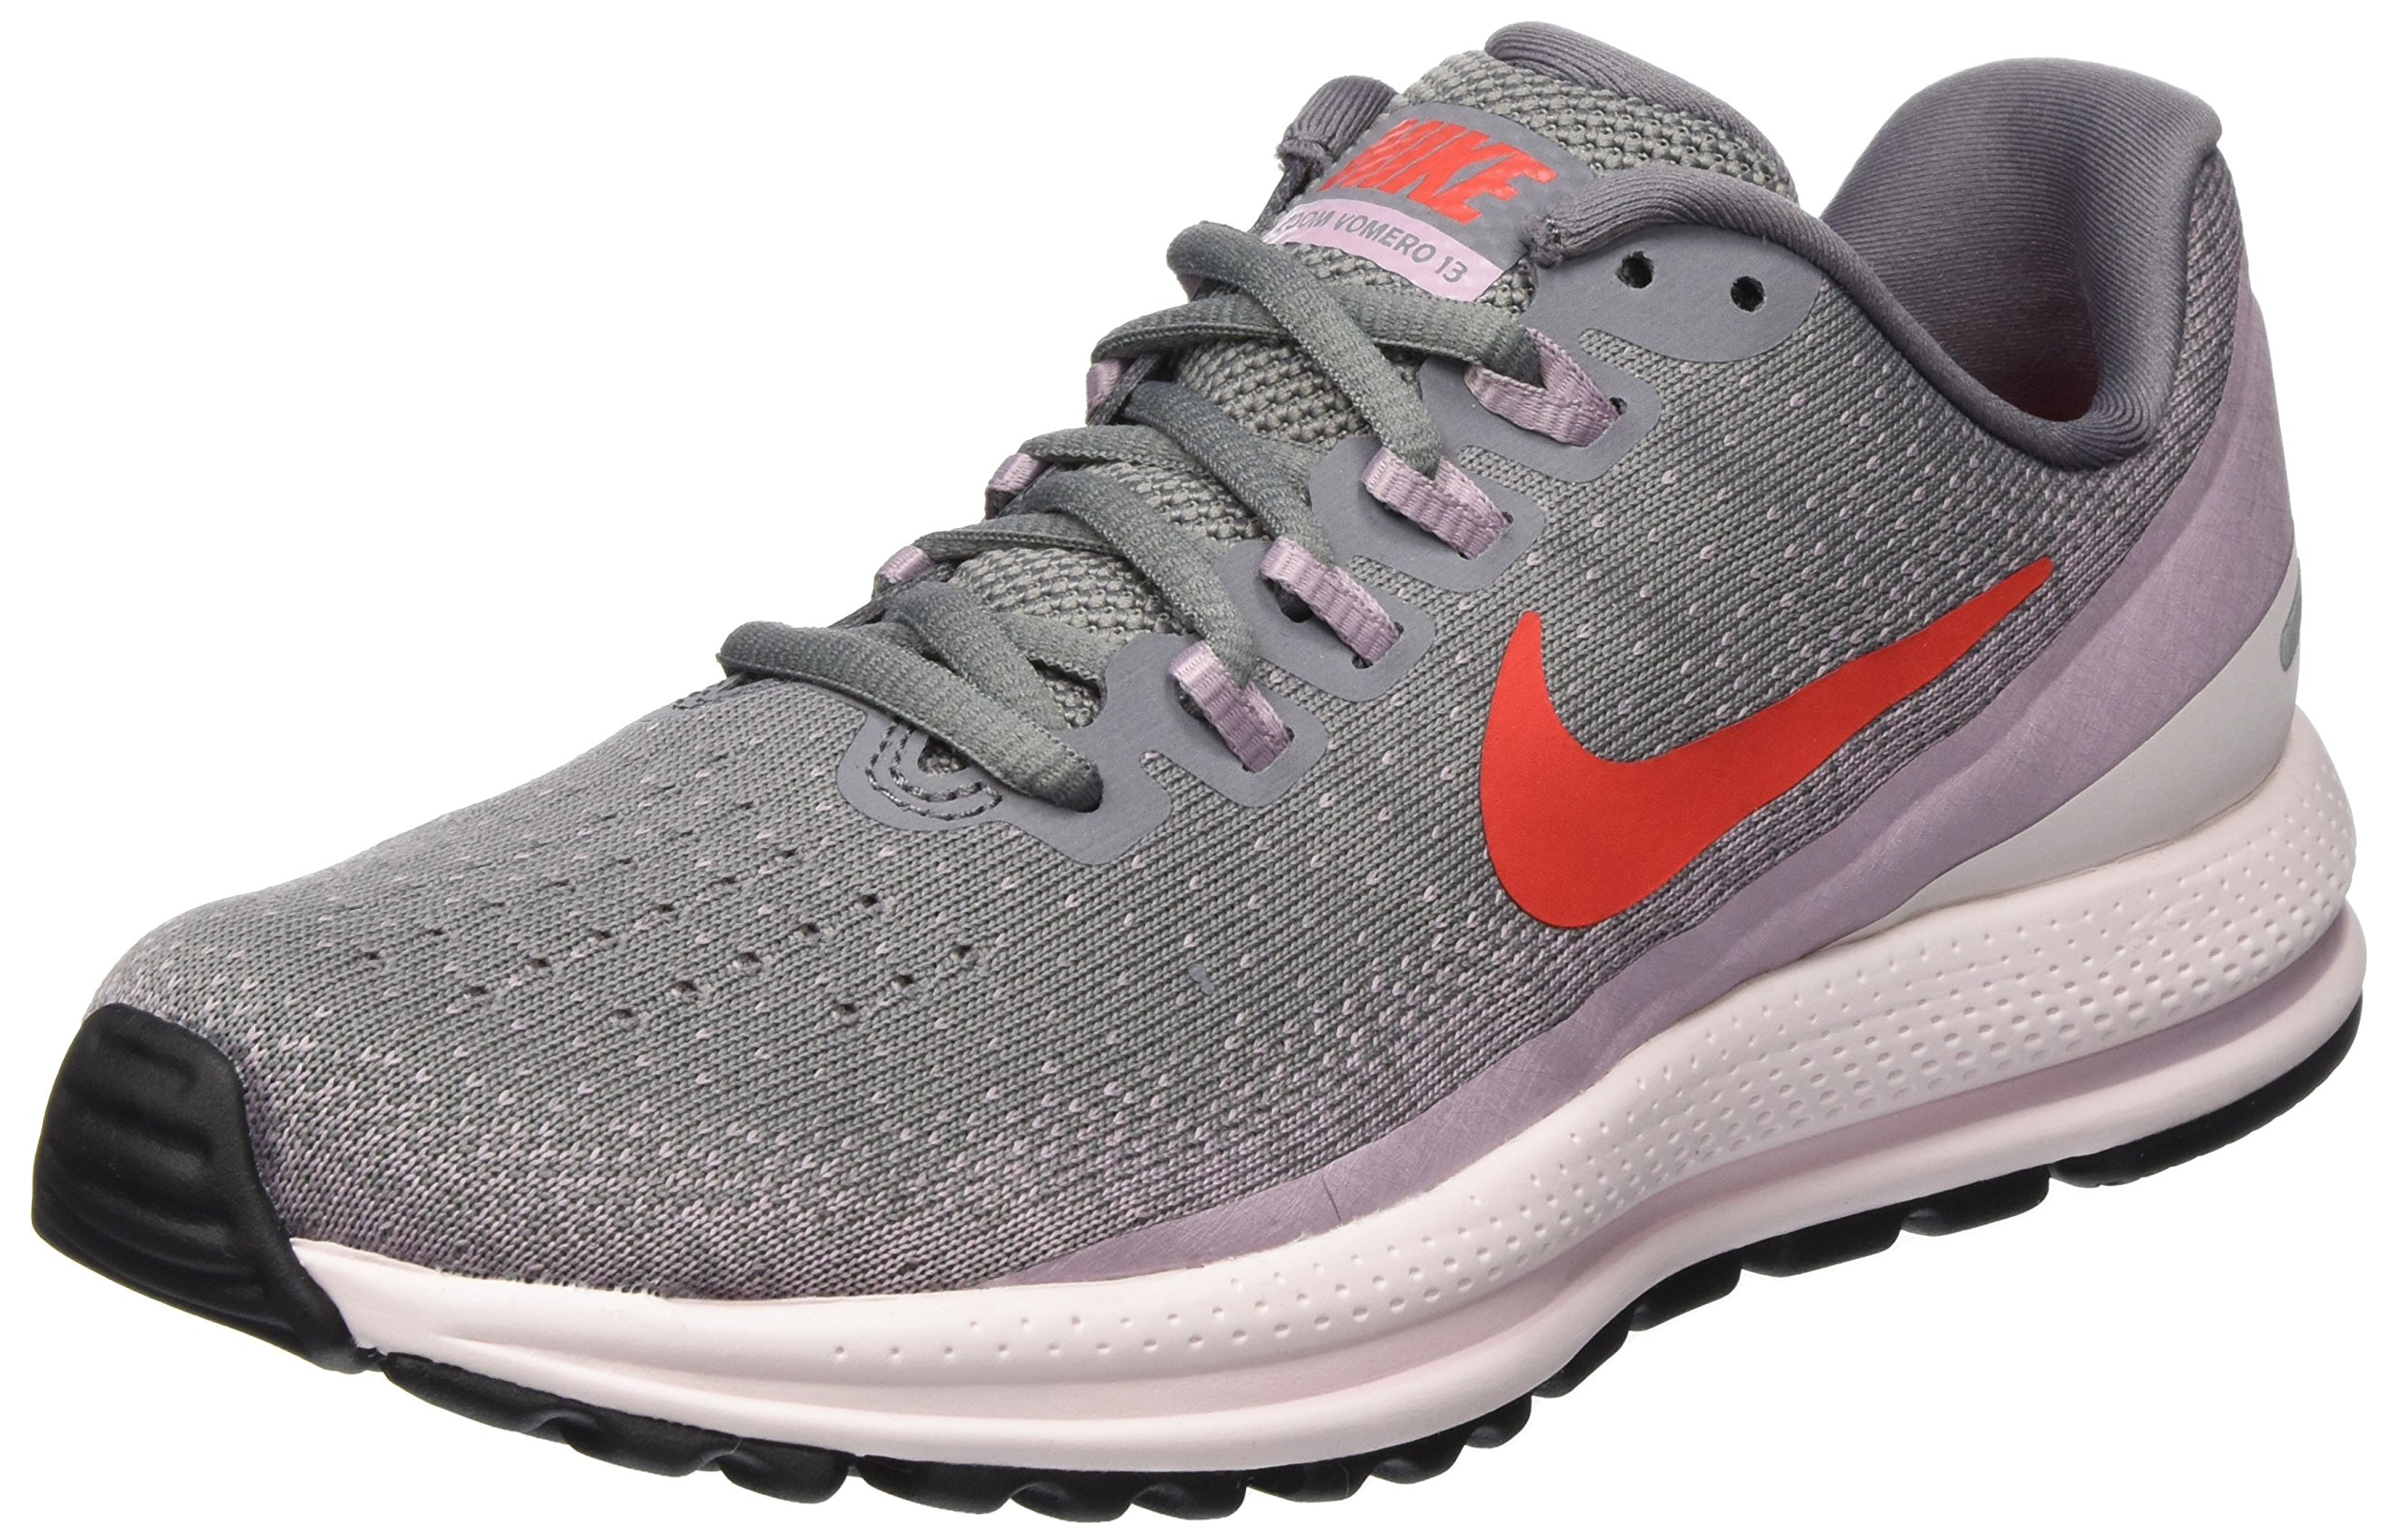 Nike Women's Air Zoom Vomero 13 Running Shoe Gunsmoke/Habanero RED-Elemental Rose 6.0